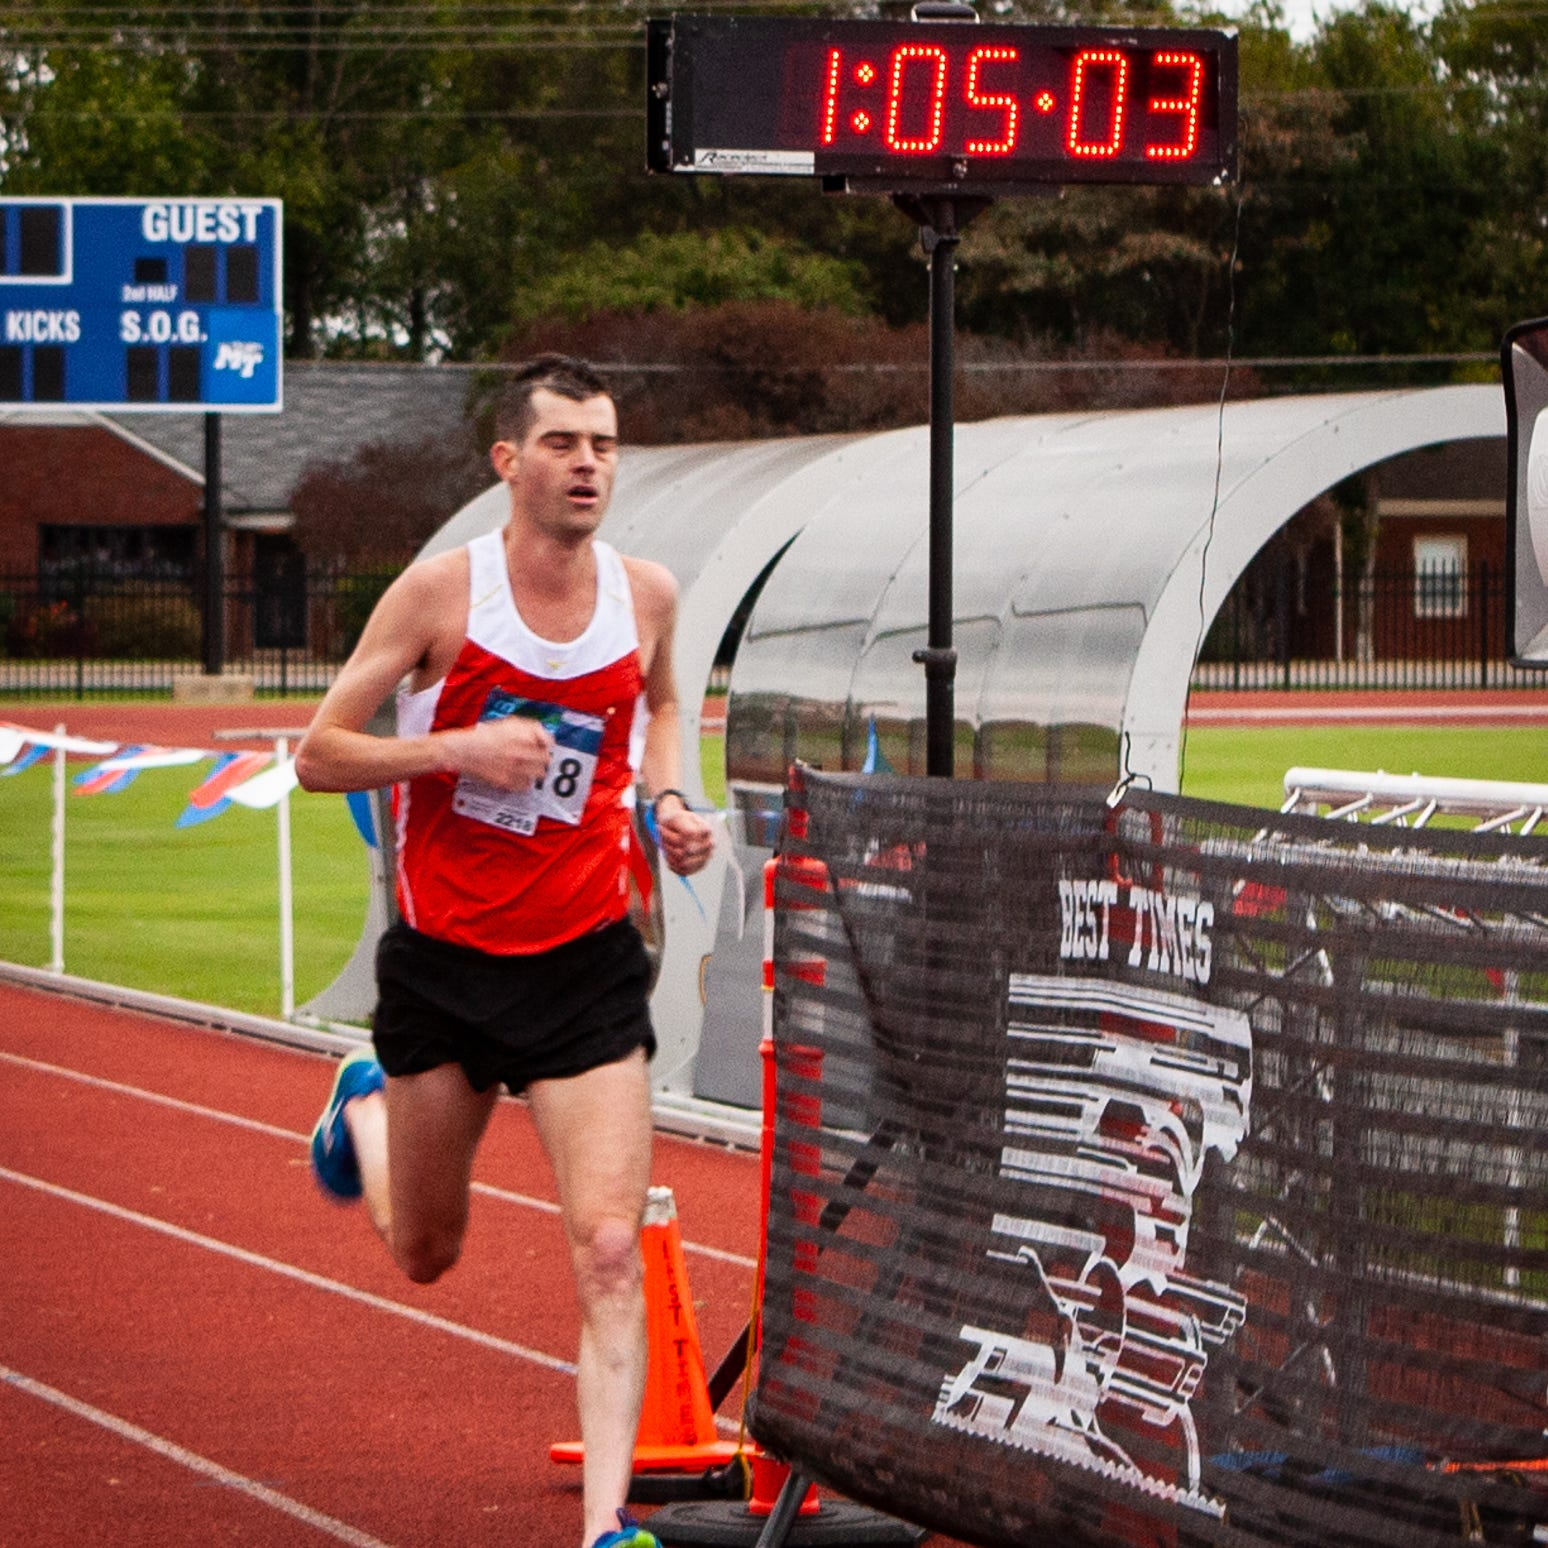 Murfreesboro Half Marathon: American 25K record holder breaks 8-year course record